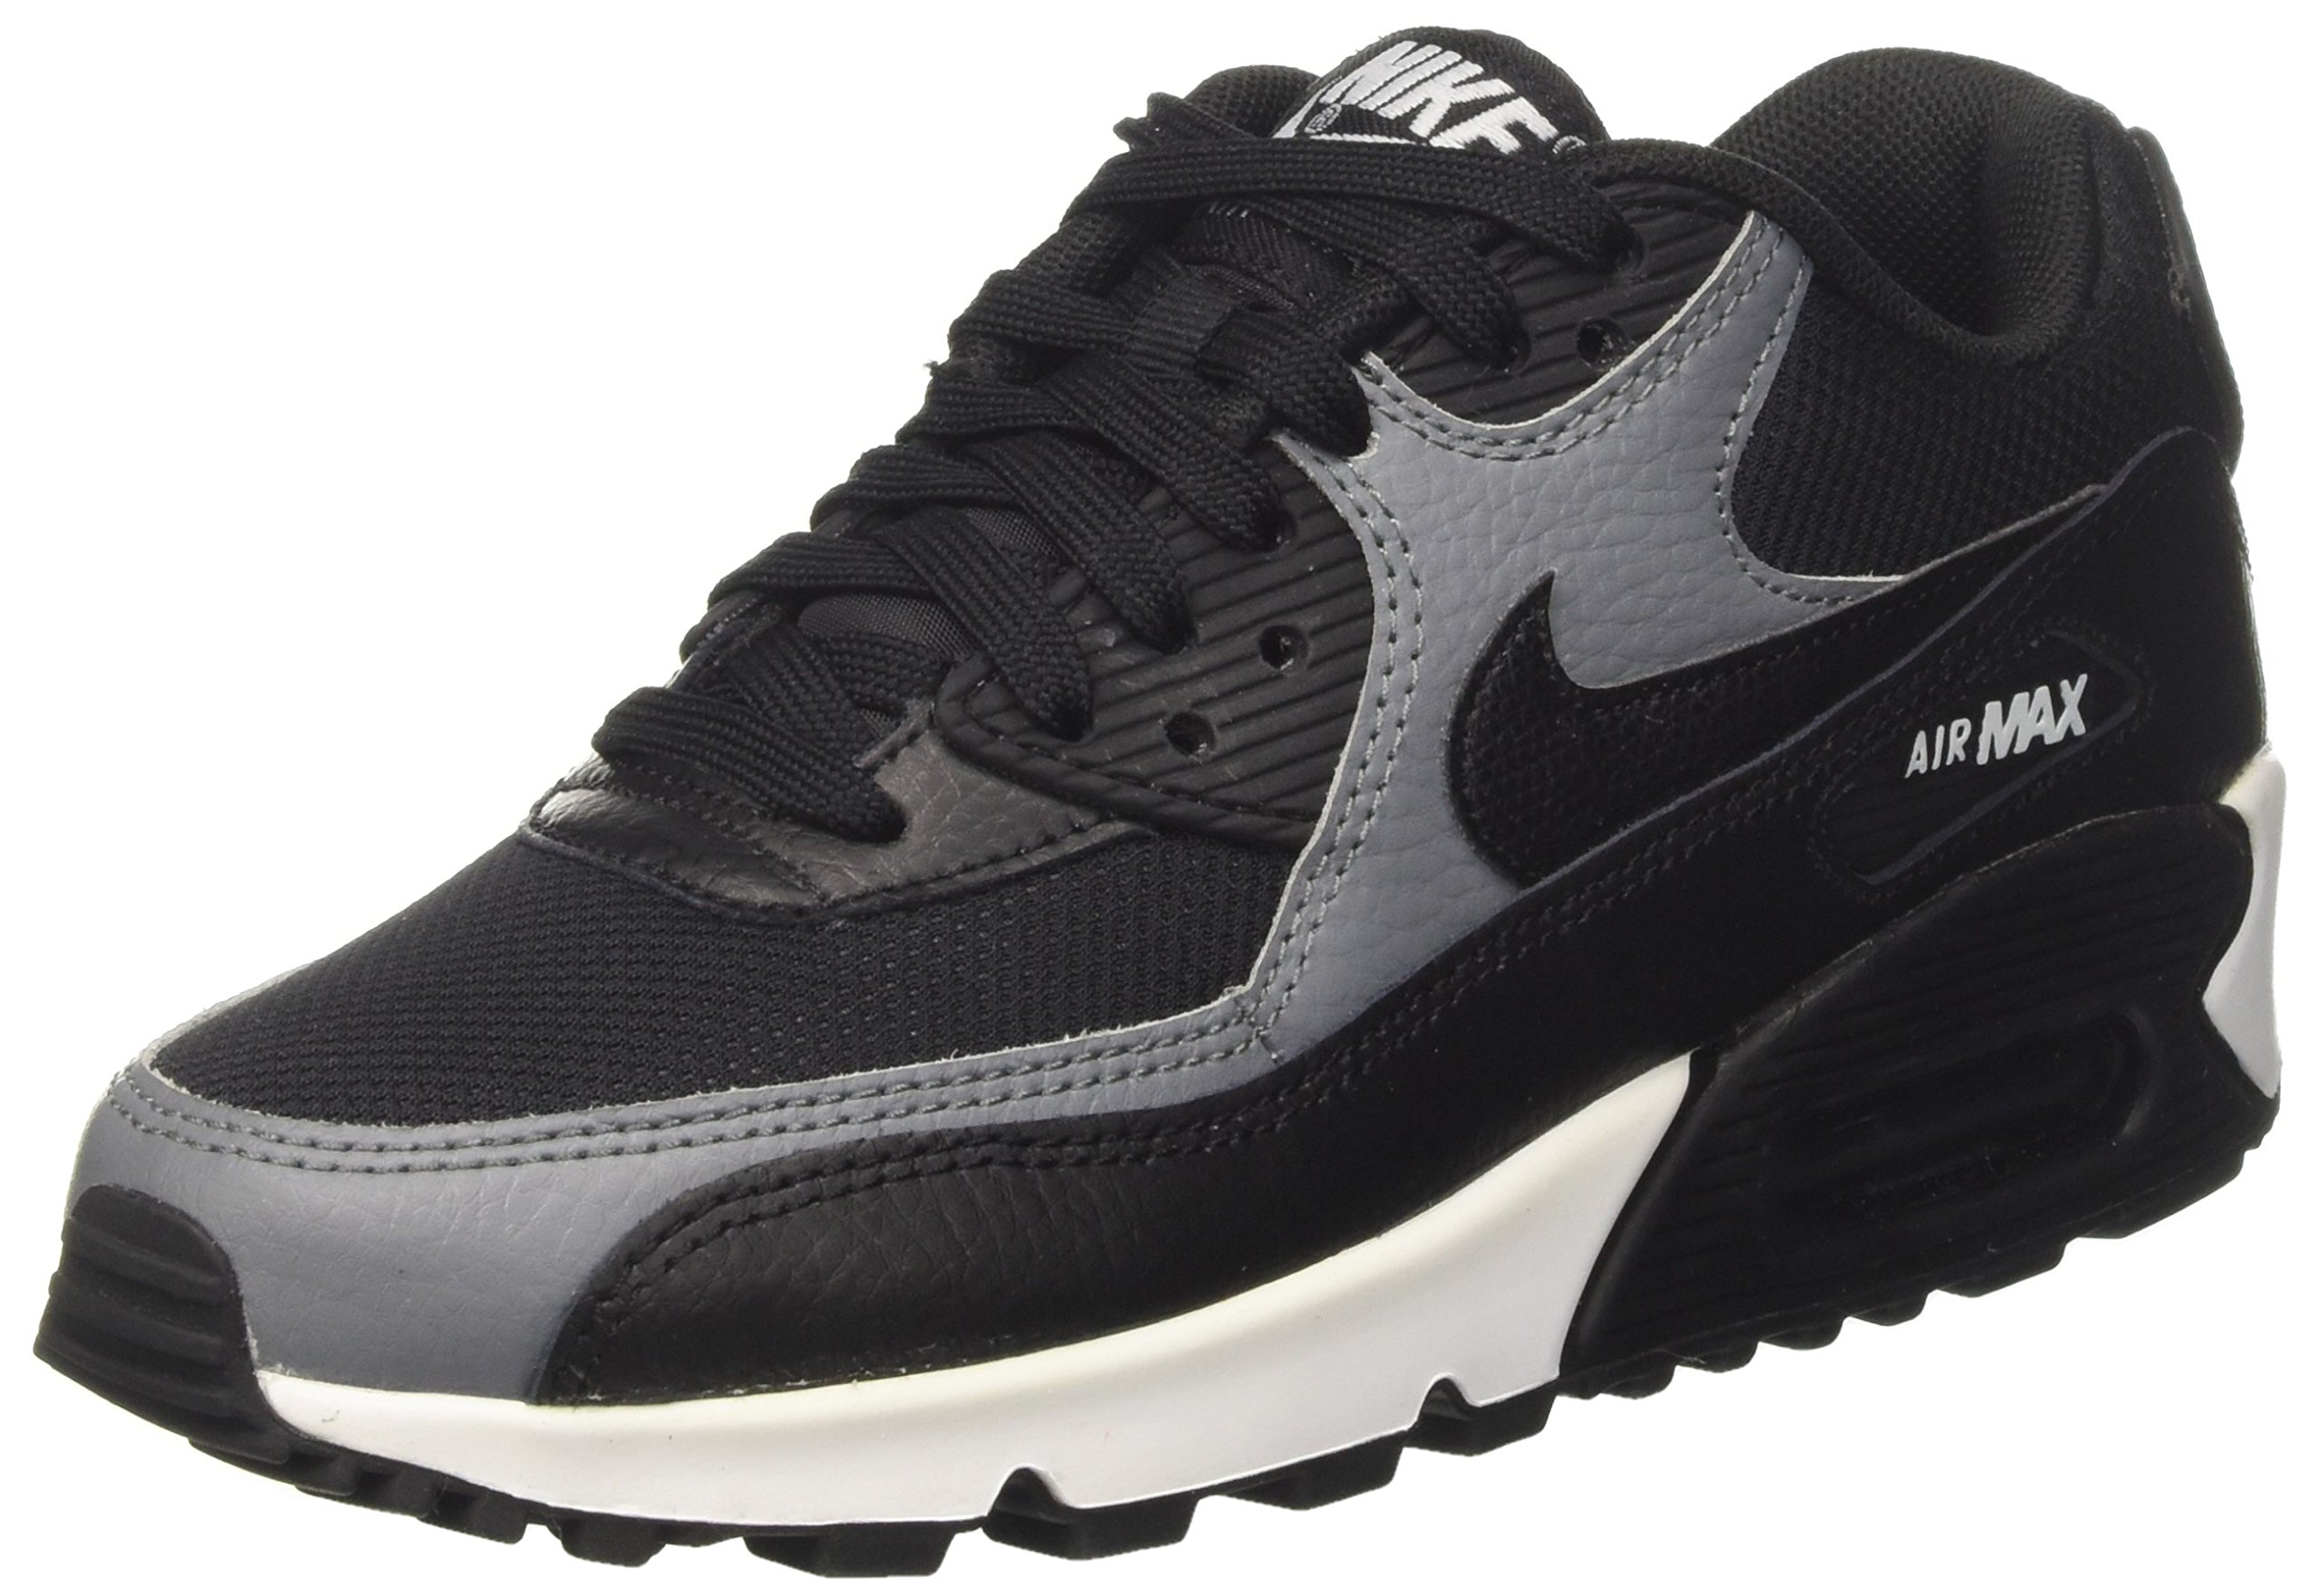 NIKE Air Max 90 Women's Shoes BlackBlackCool Grey 325213 037 (5 B(M) US)